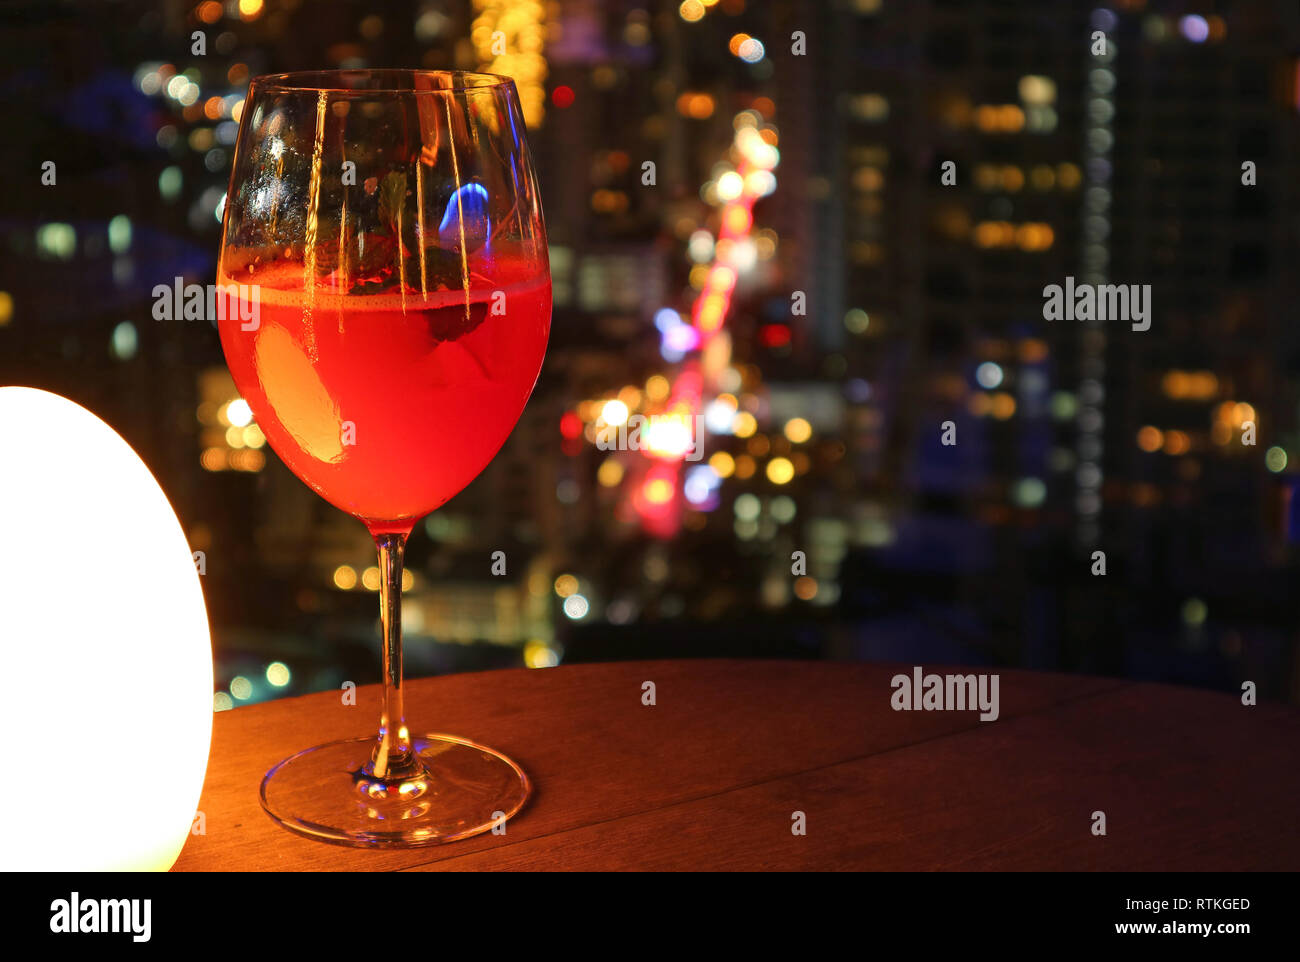 Glass of vibrant red cocktail on the rooftop bar's table with urban night view bokeh in background - Stock Image